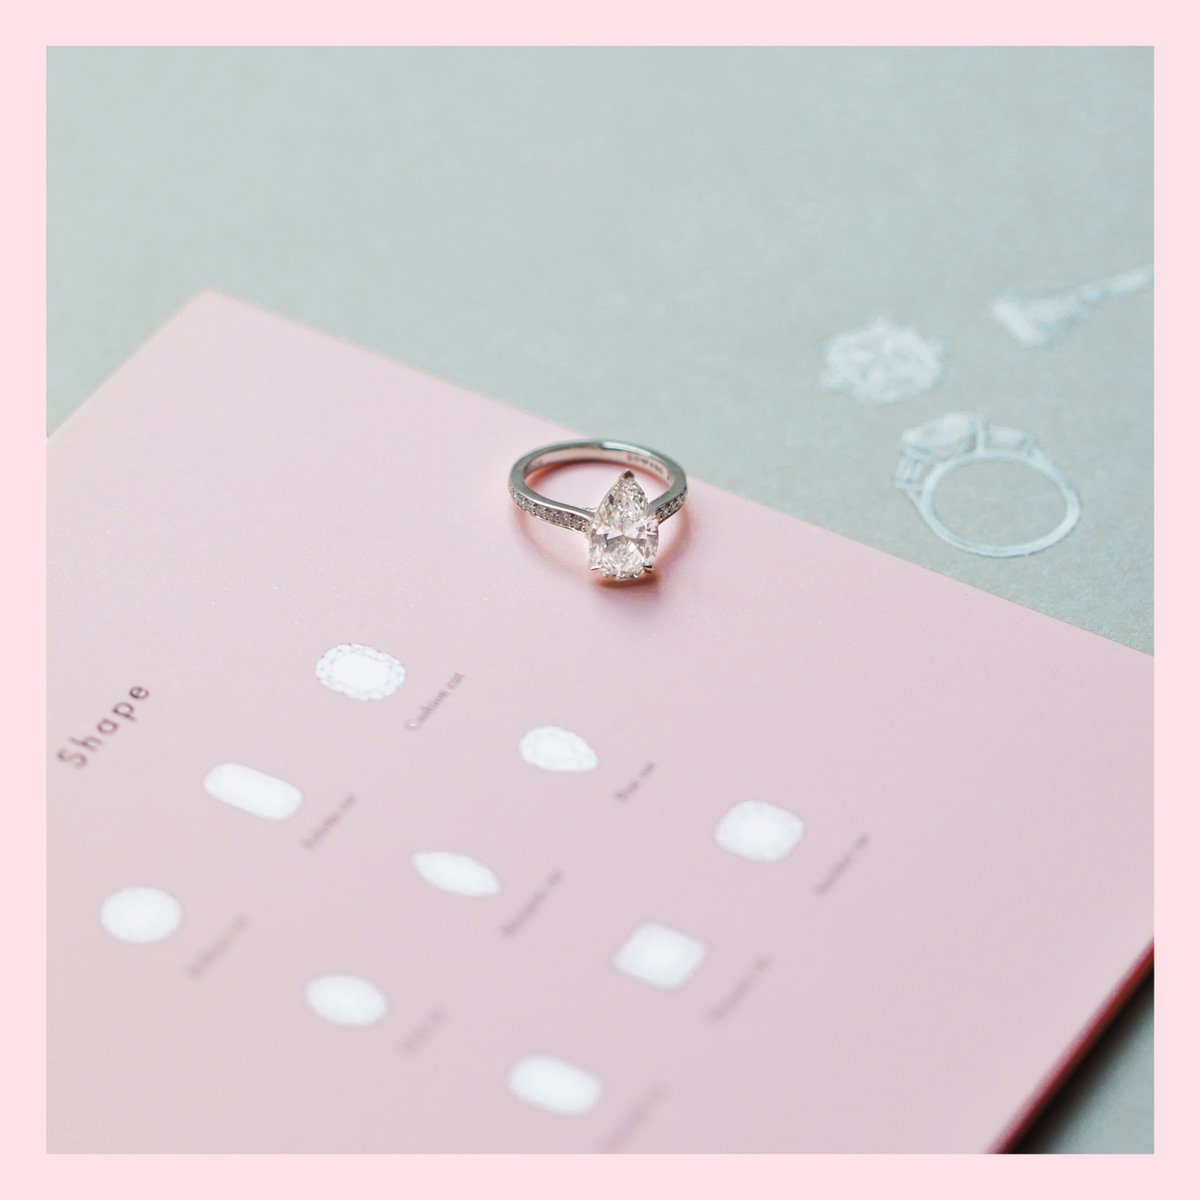 f469613a3f0c92 Boodles@Boodles One of the first steps of choosing your engagement ring is  selecting your diamond cut. Which is your favourite?